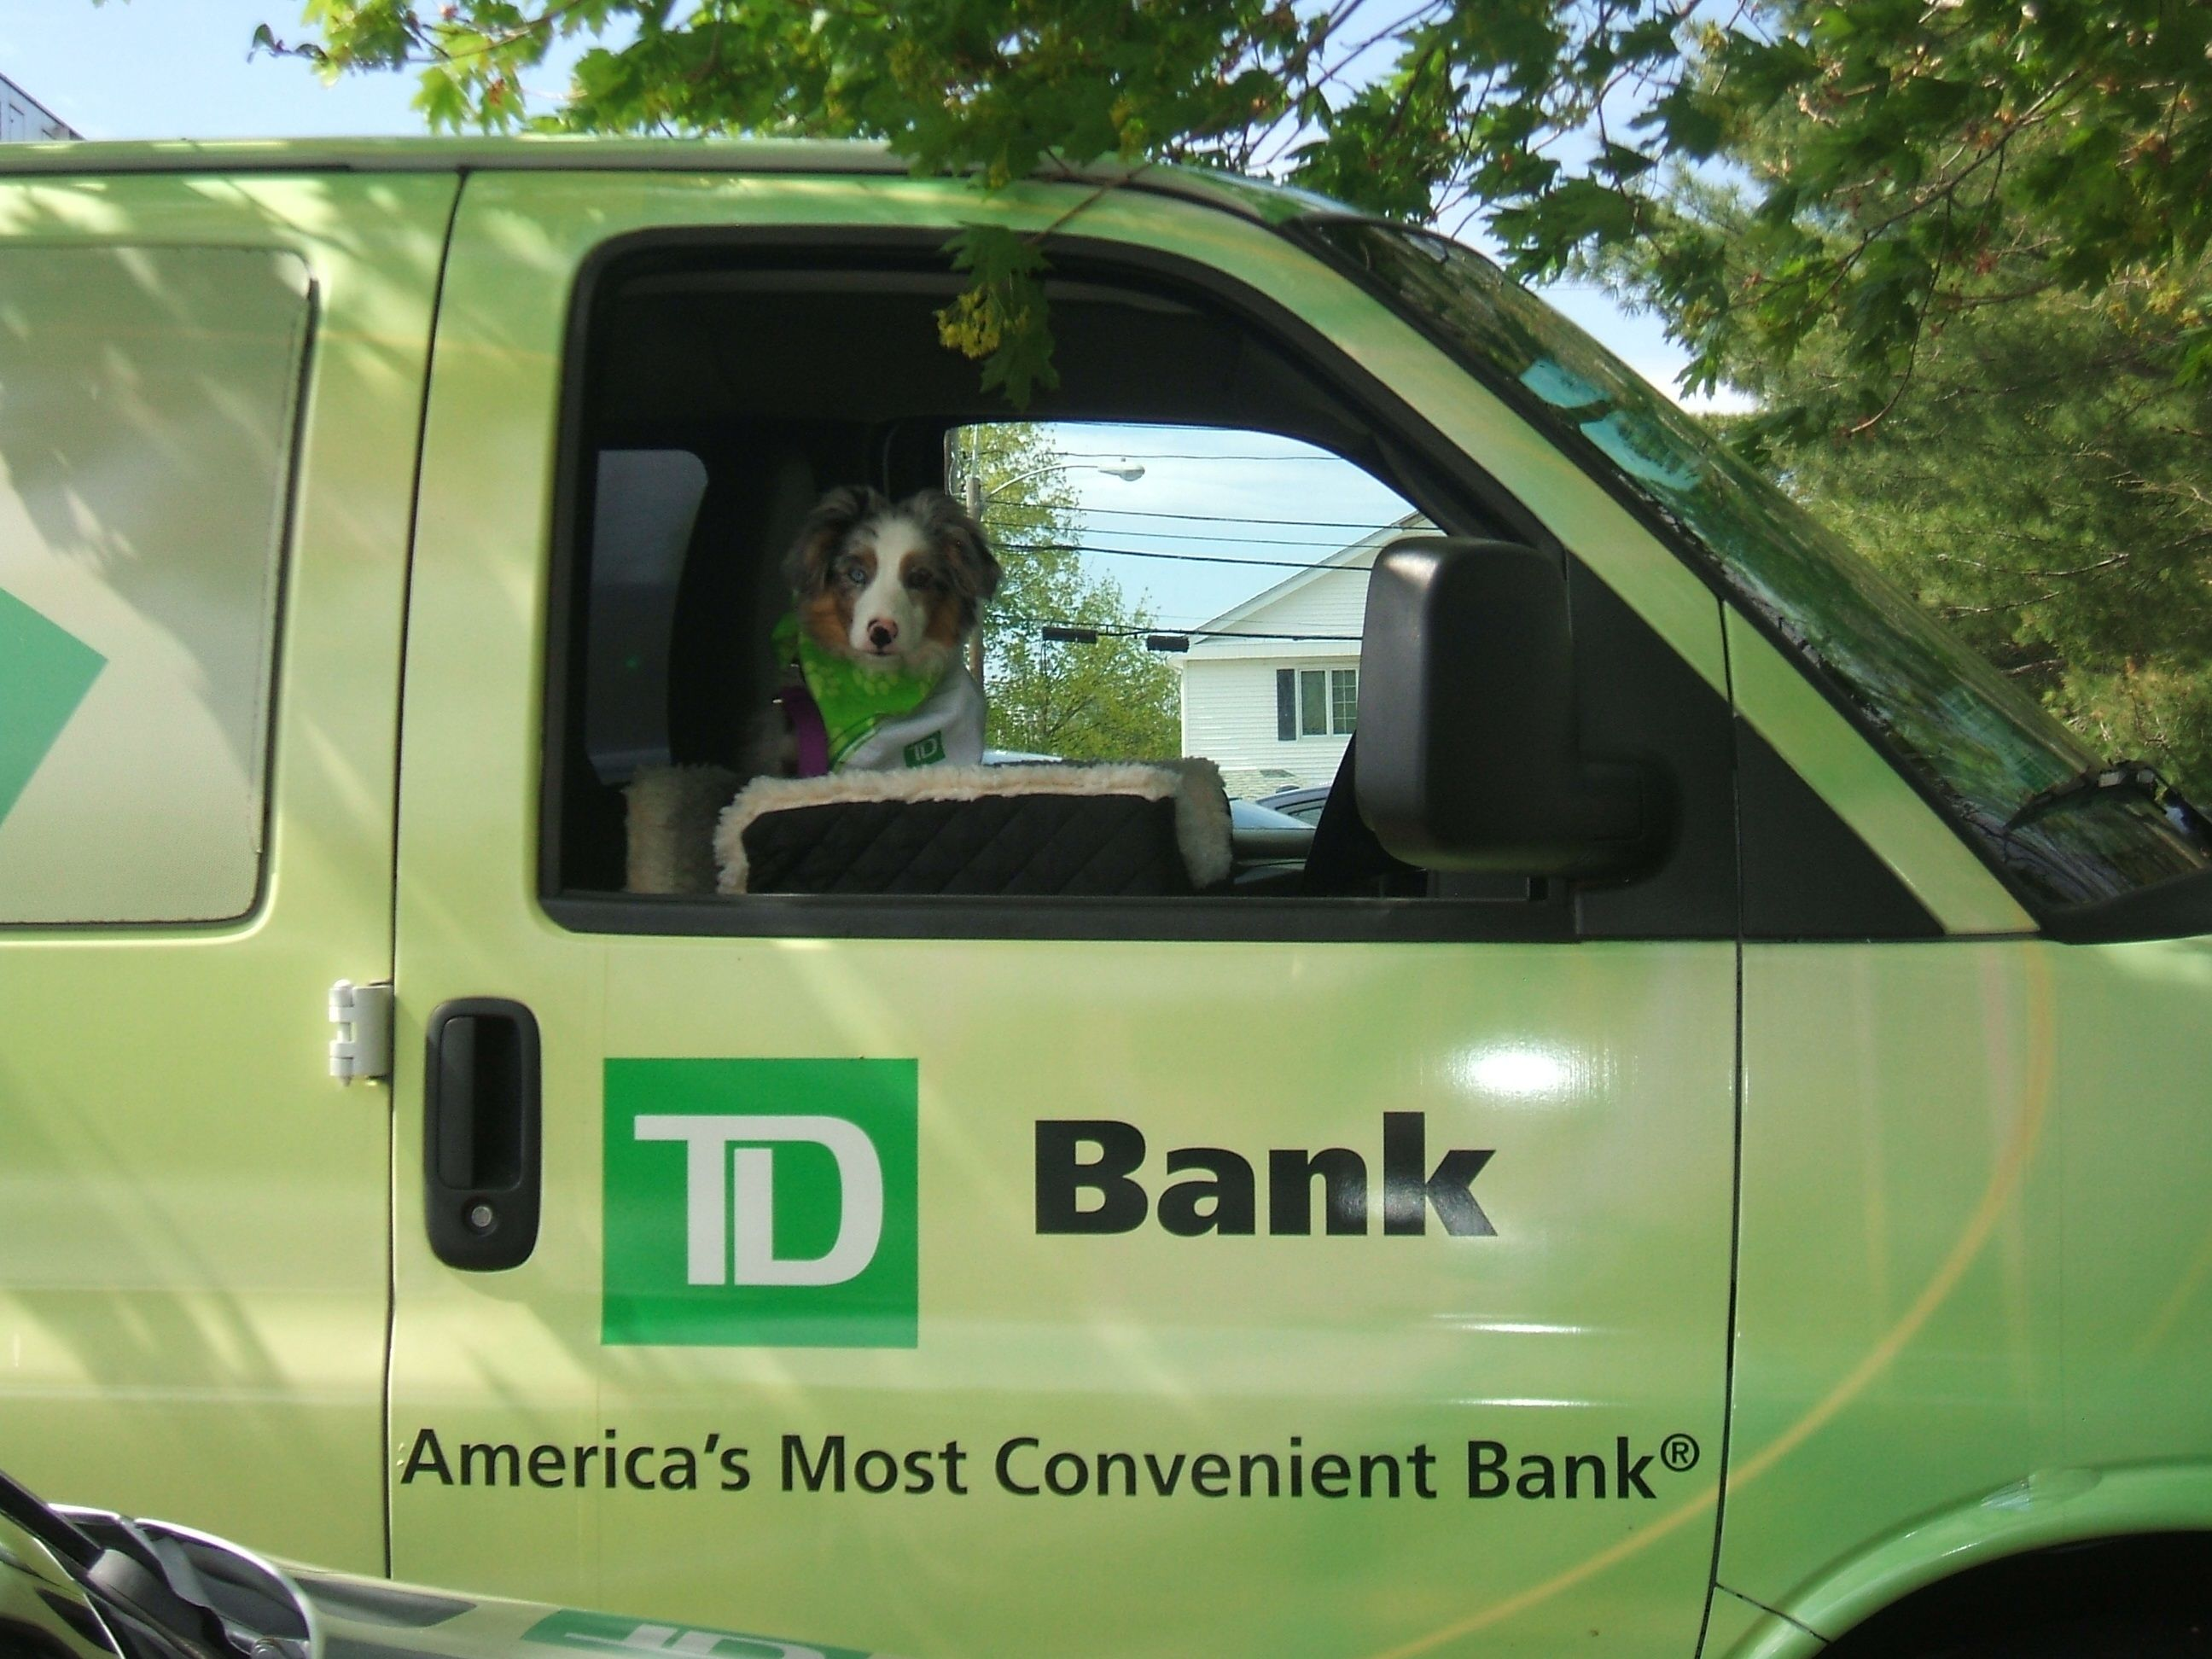 Sydney loves rides in the TD Bank WOW! van -windows down of course